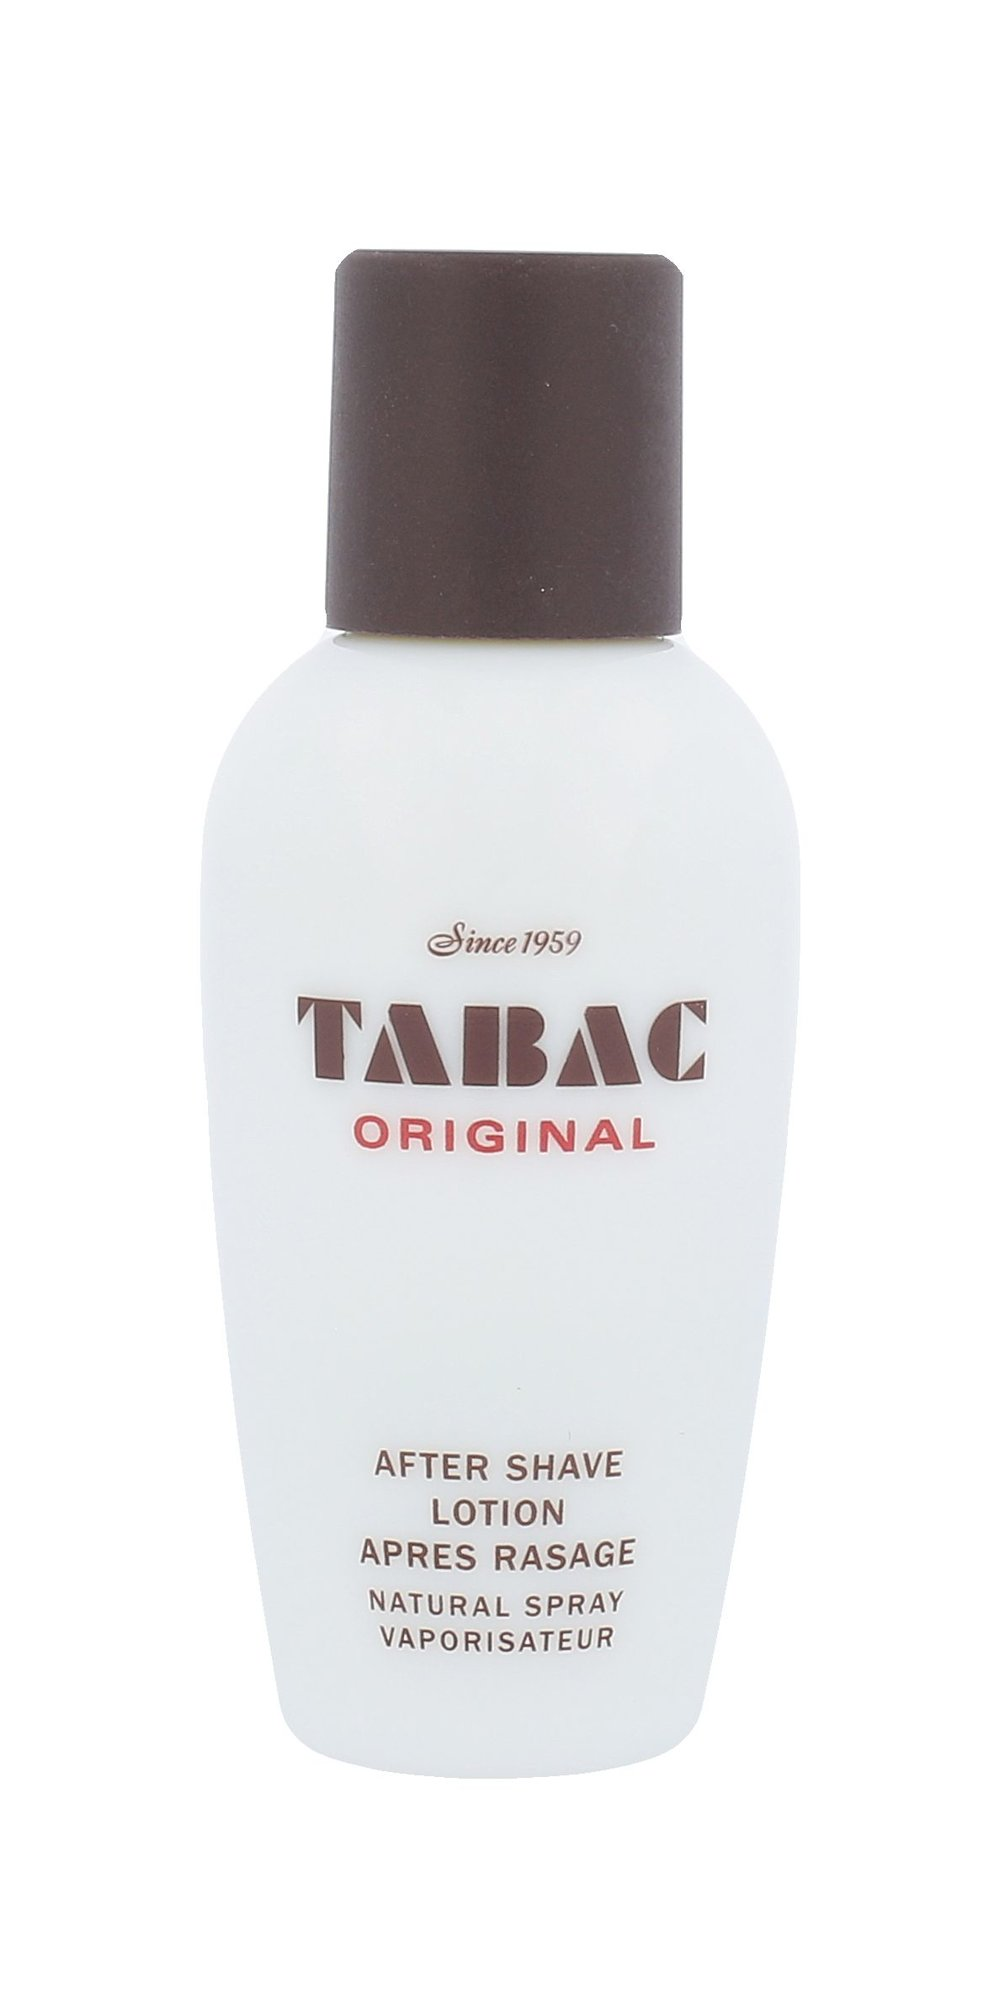 TABAC Original Aftershave 50ml